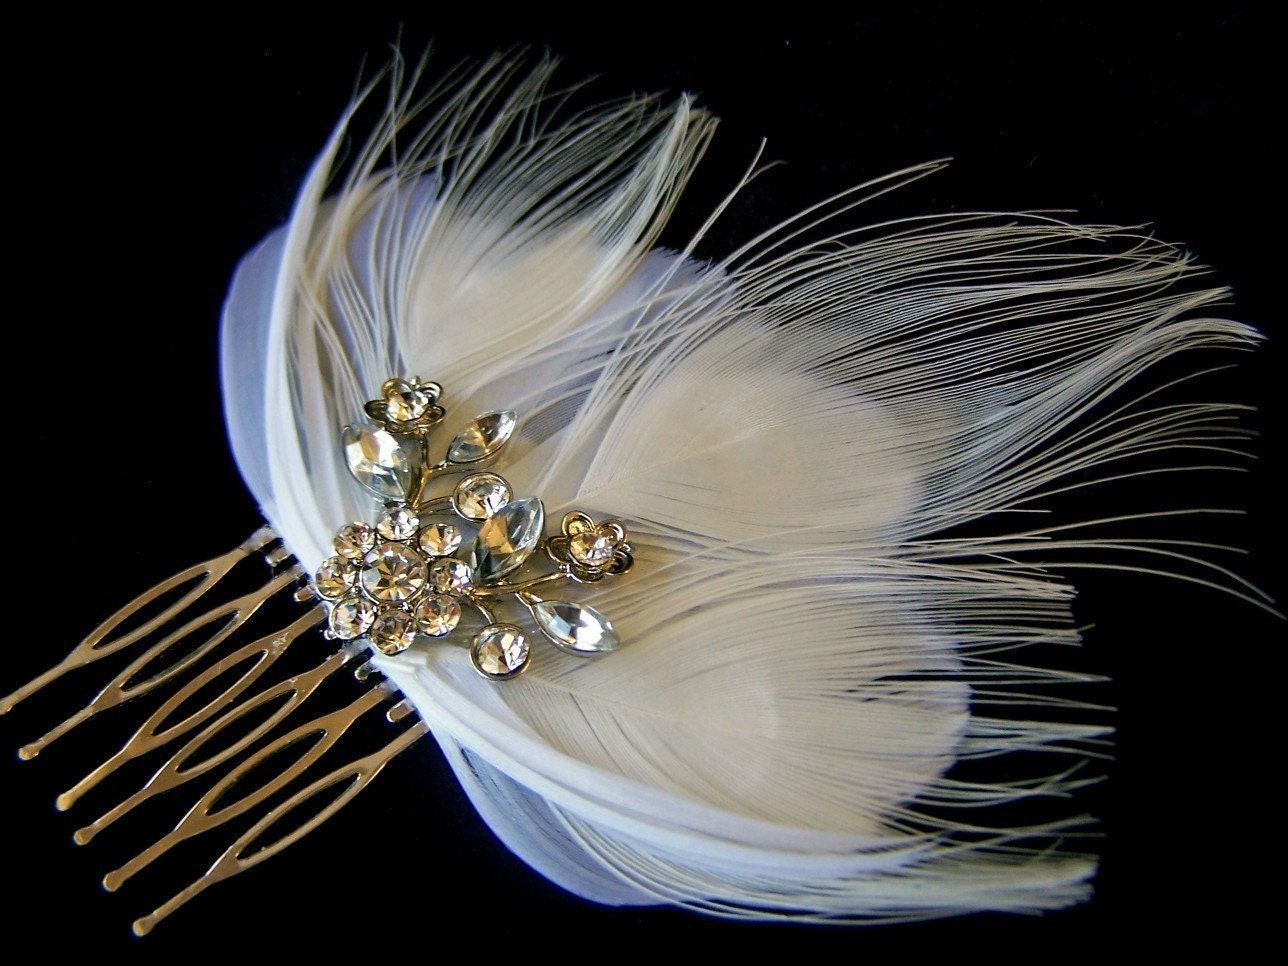 White peacock feather